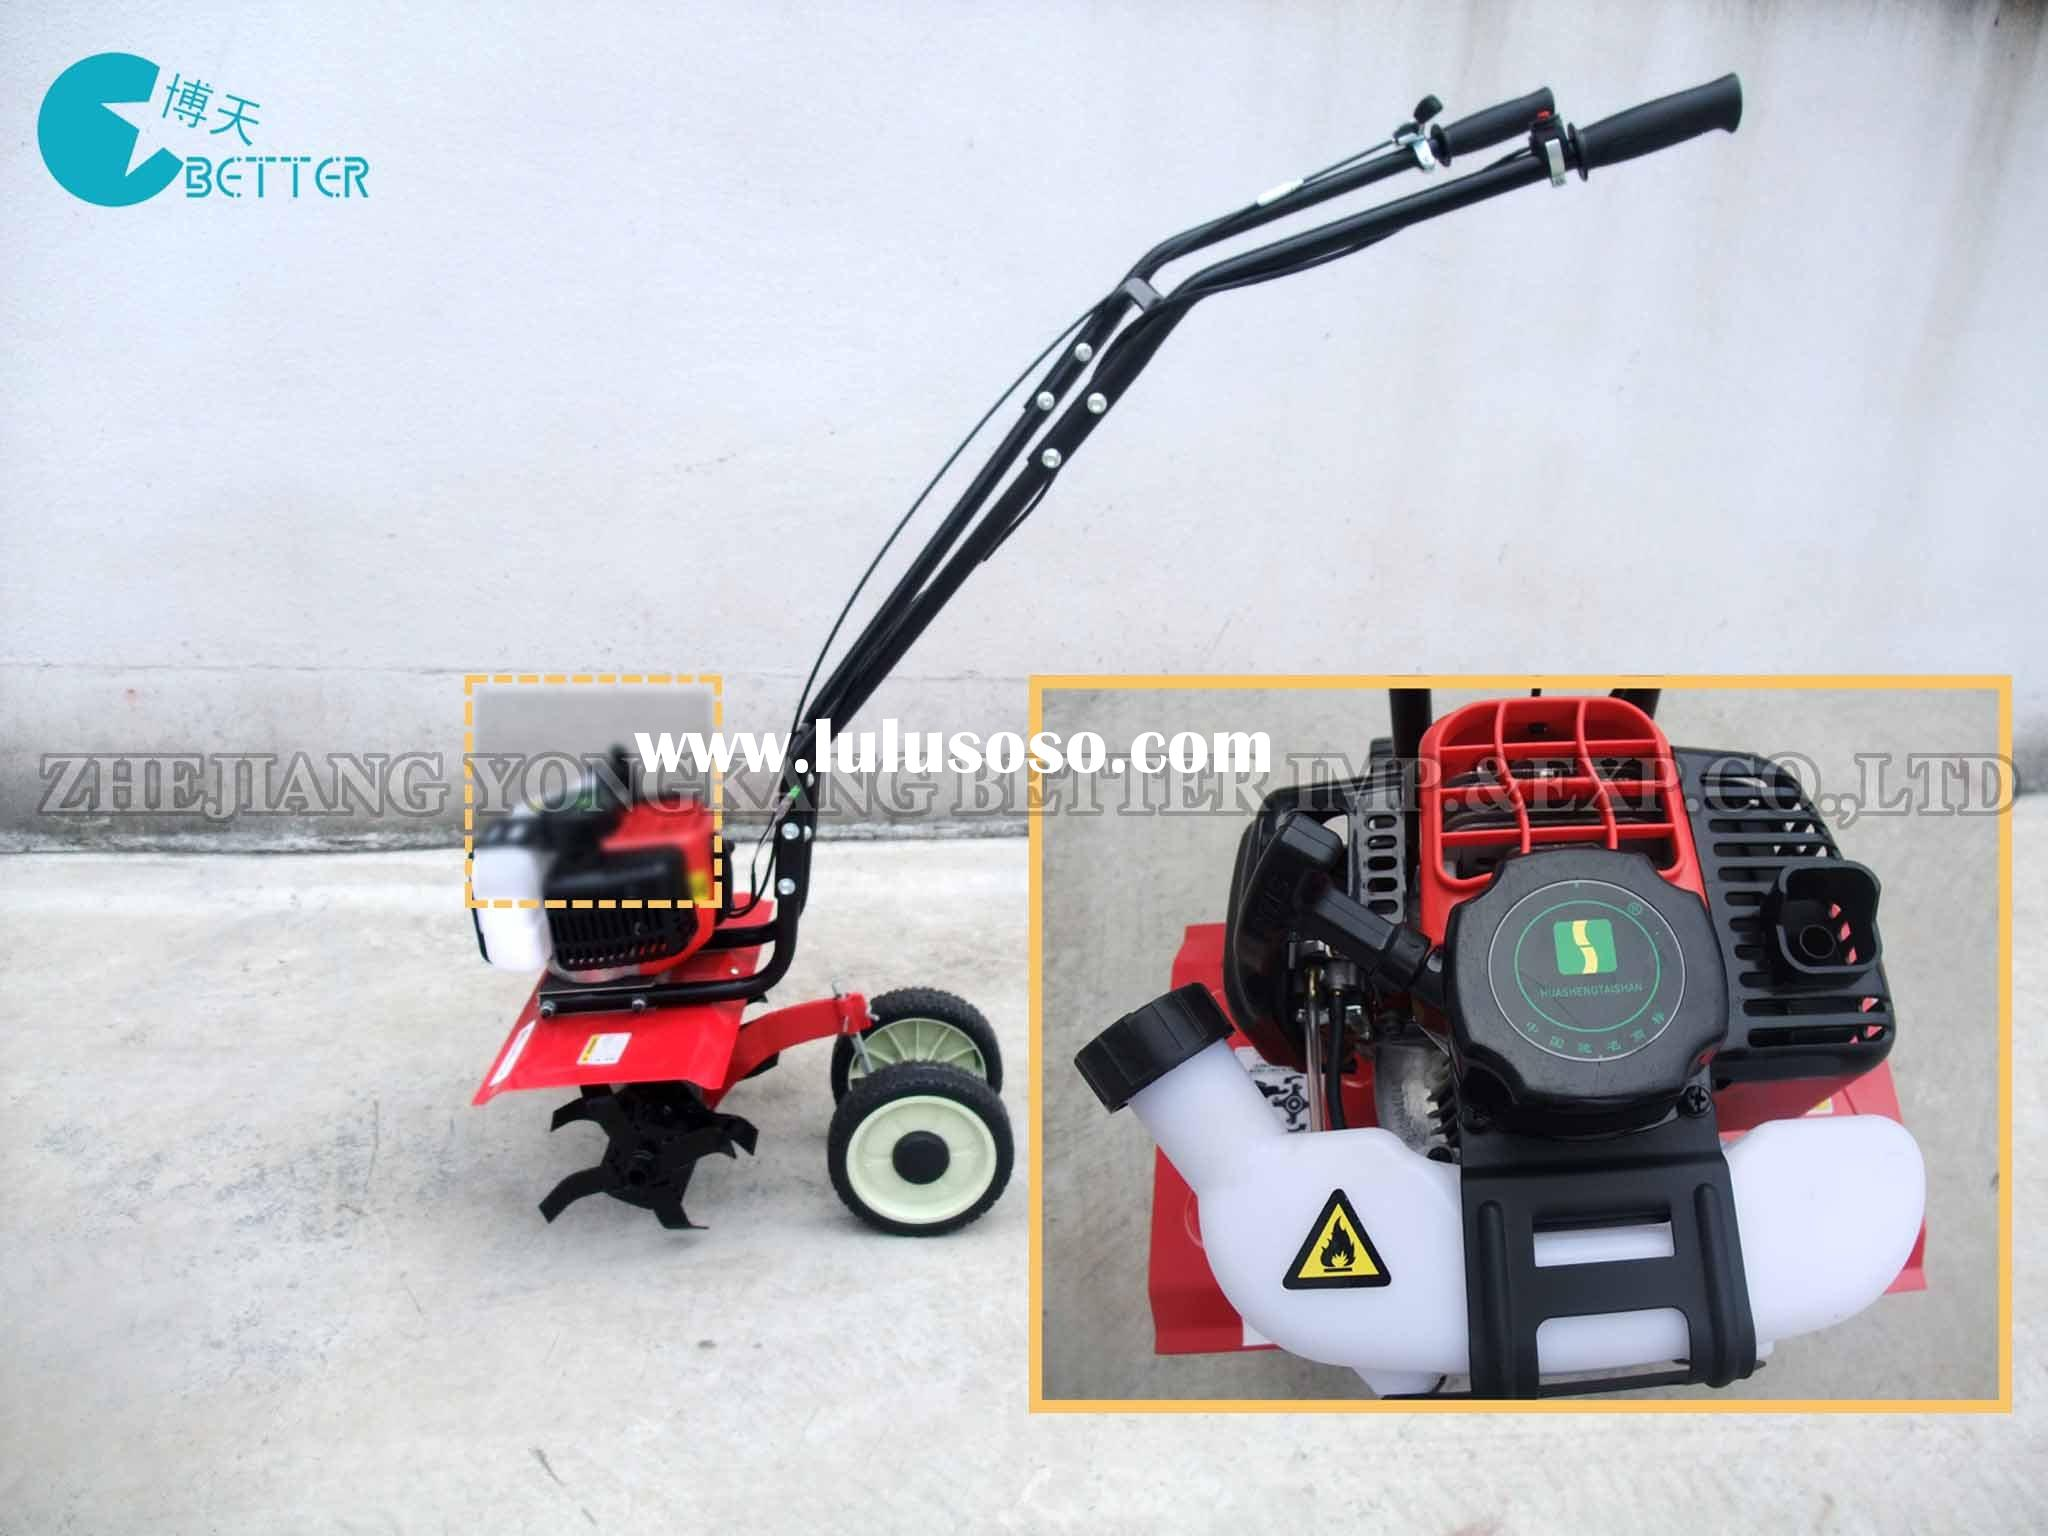 Petrol Rototiller Garden Mini Tiller Cultivator Rotavator (Small light and Compact Garden Tiller) BT